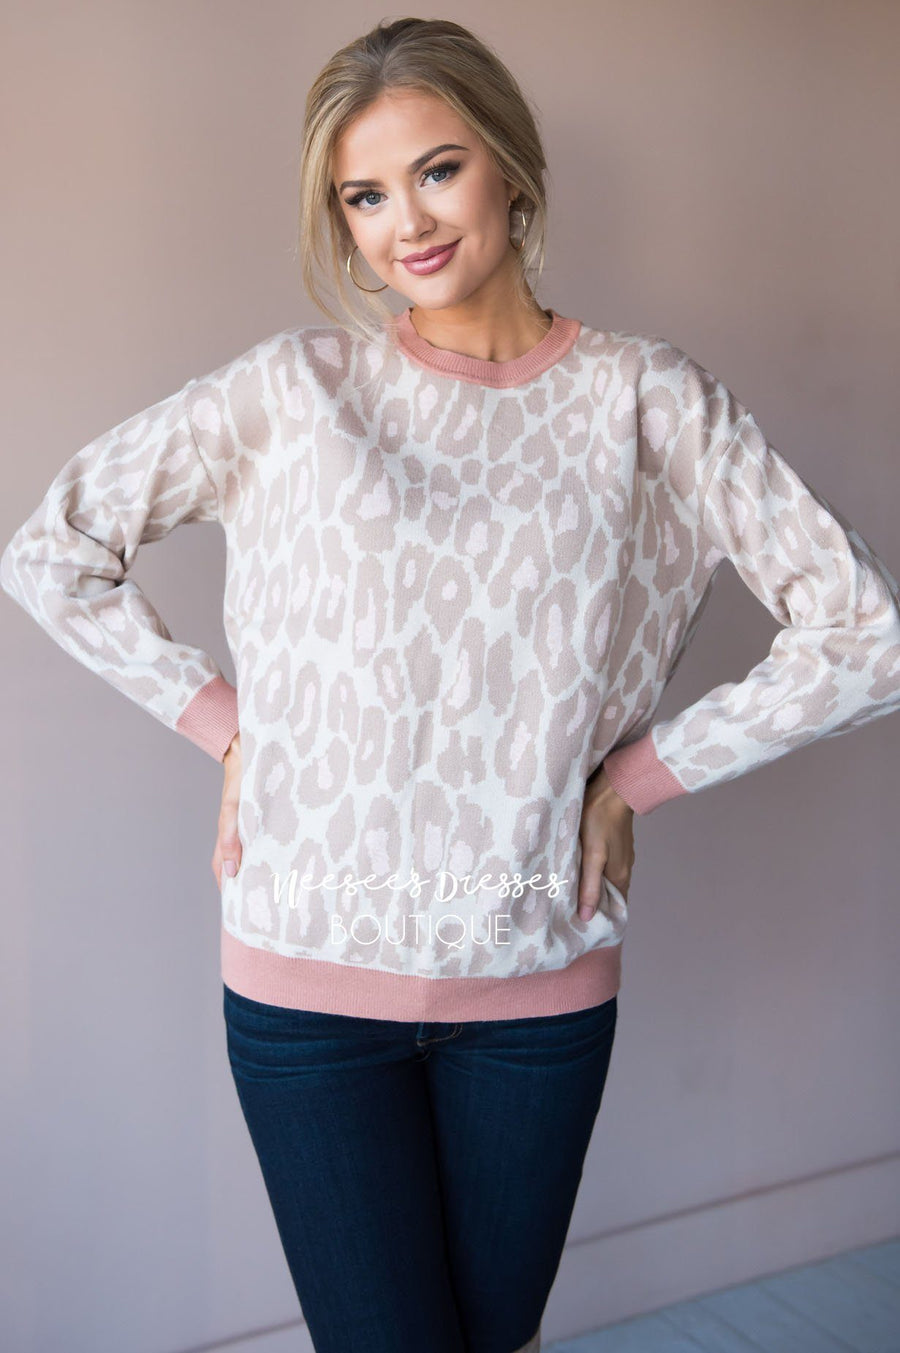 Stand By Me animal print sweater Tops vendor-unknown